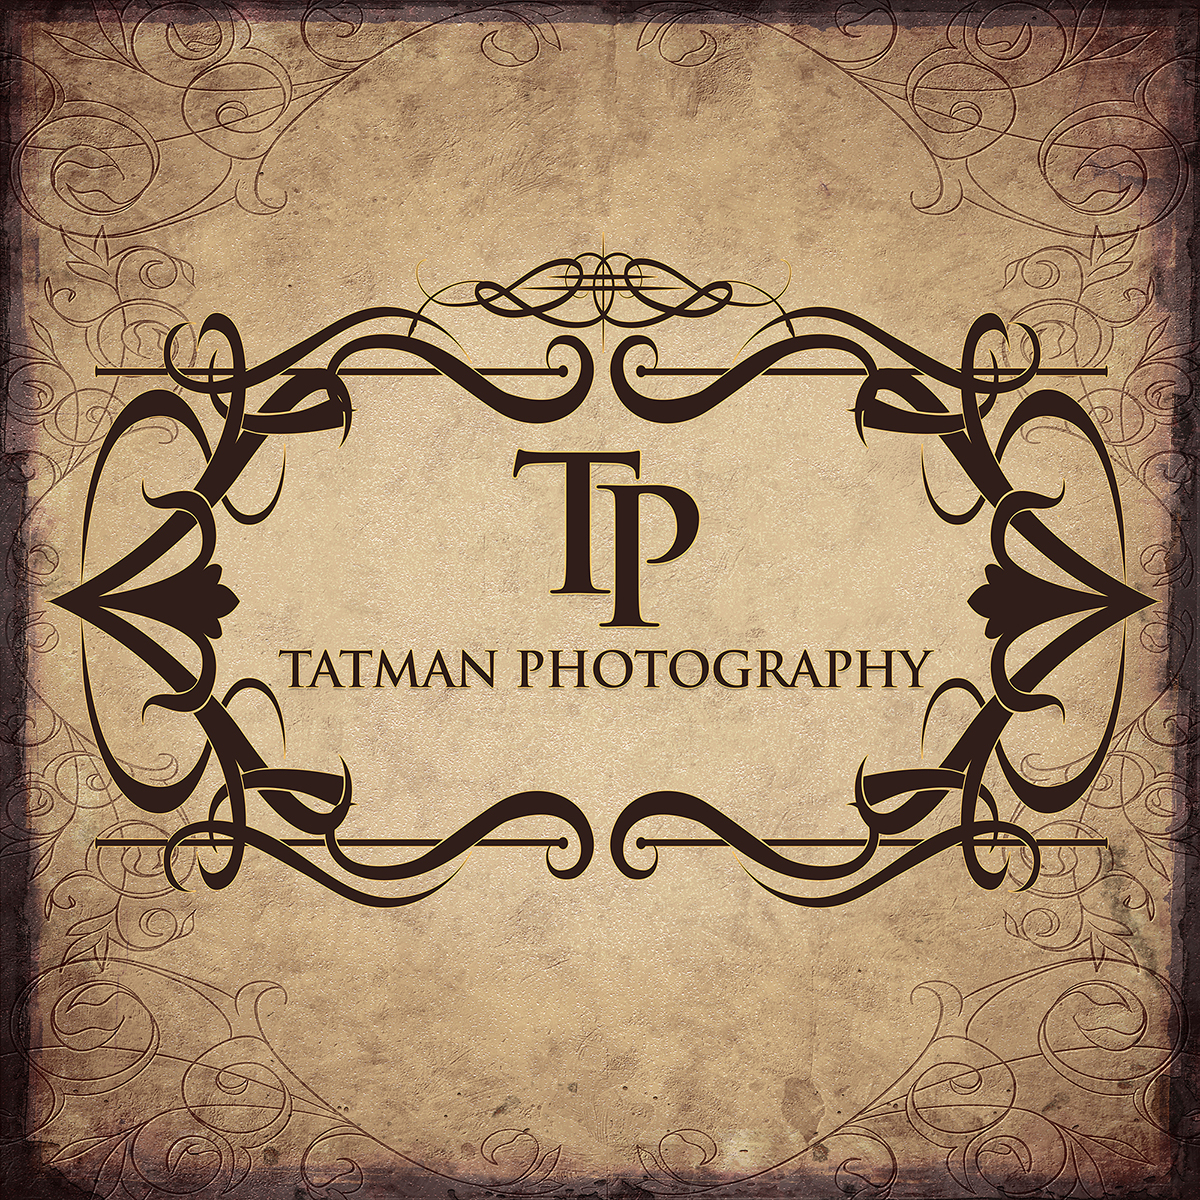 Tatman Photography